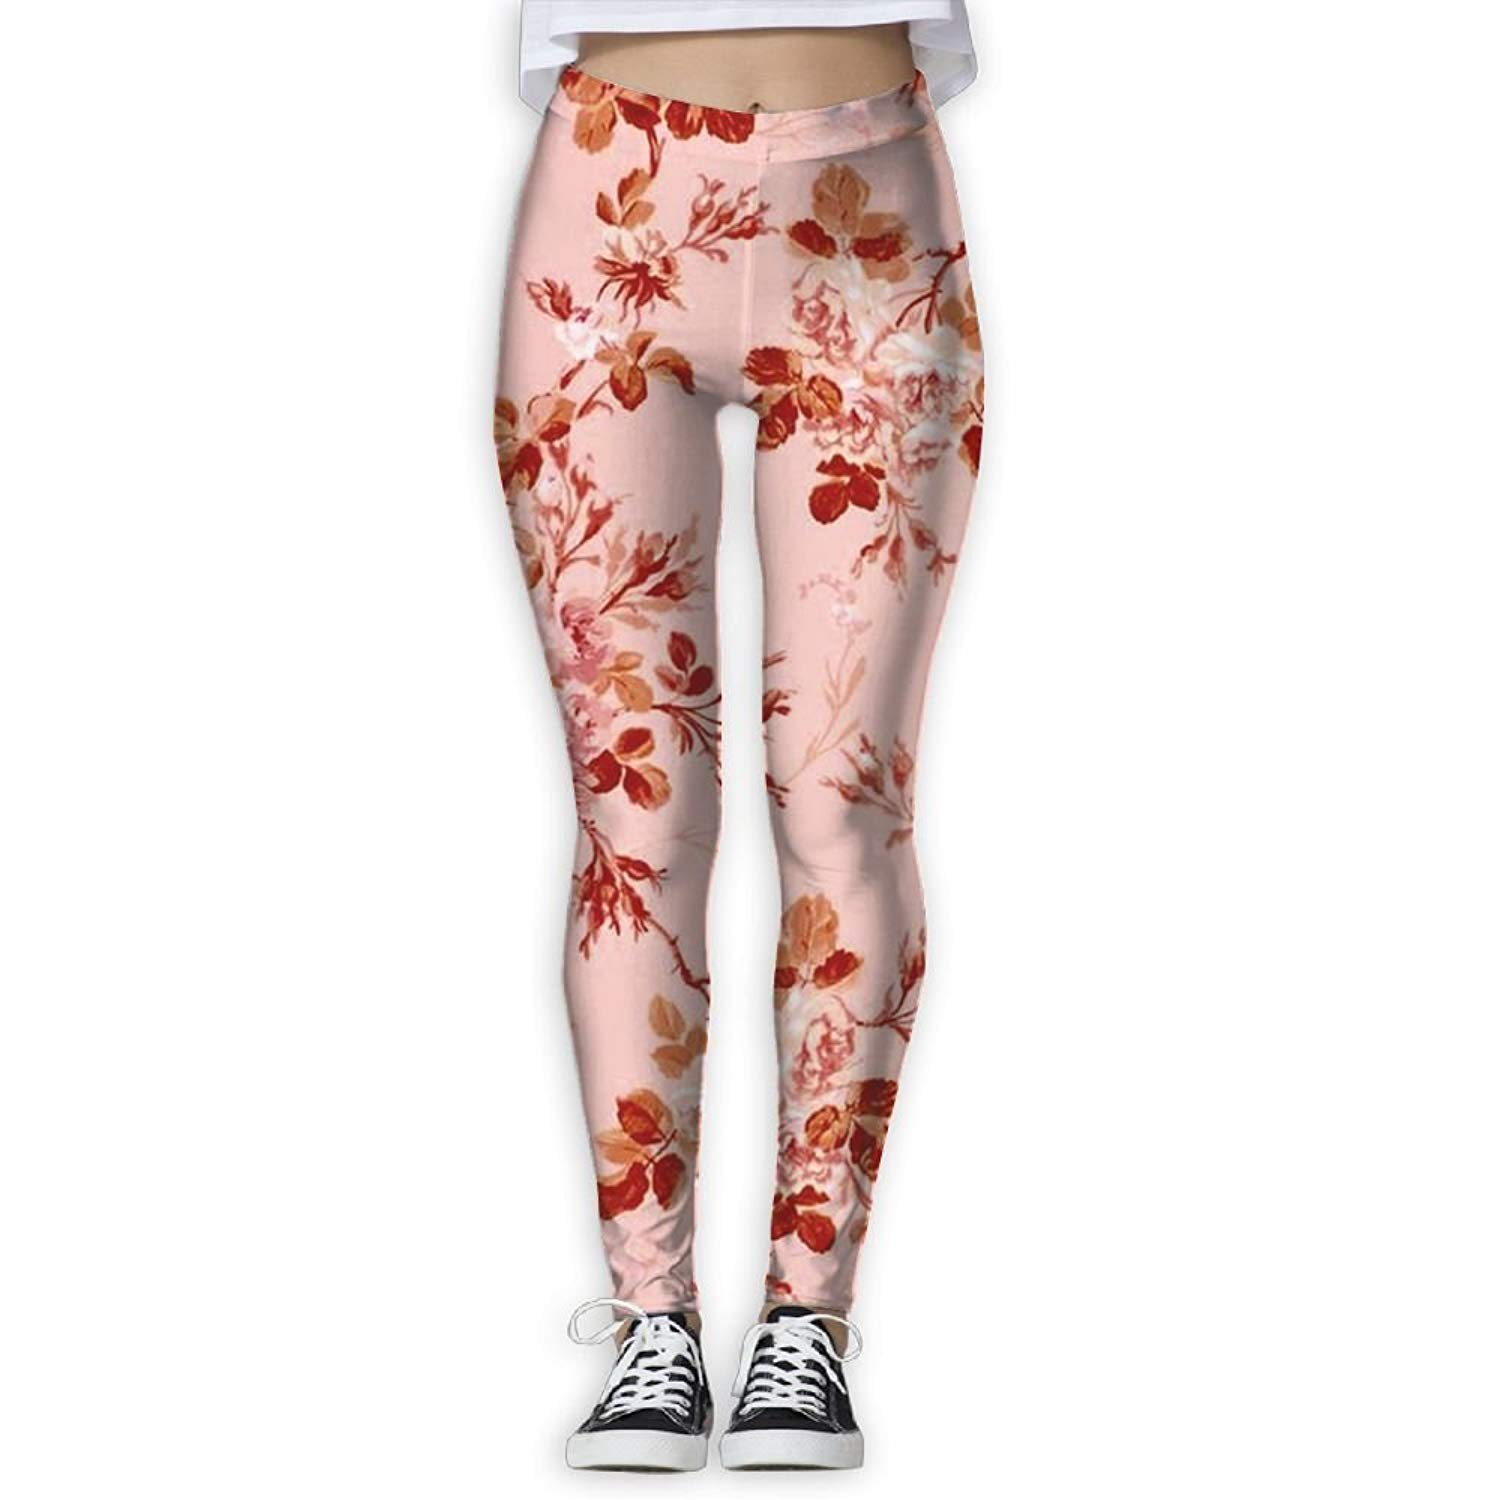 64e1e5bbf75f5 Get Quotations · HYTGHTFTT Hot Sale Peach Blossom Yoga Pants Sport Pants  Workout Leggings Sexy High Waist Trousers